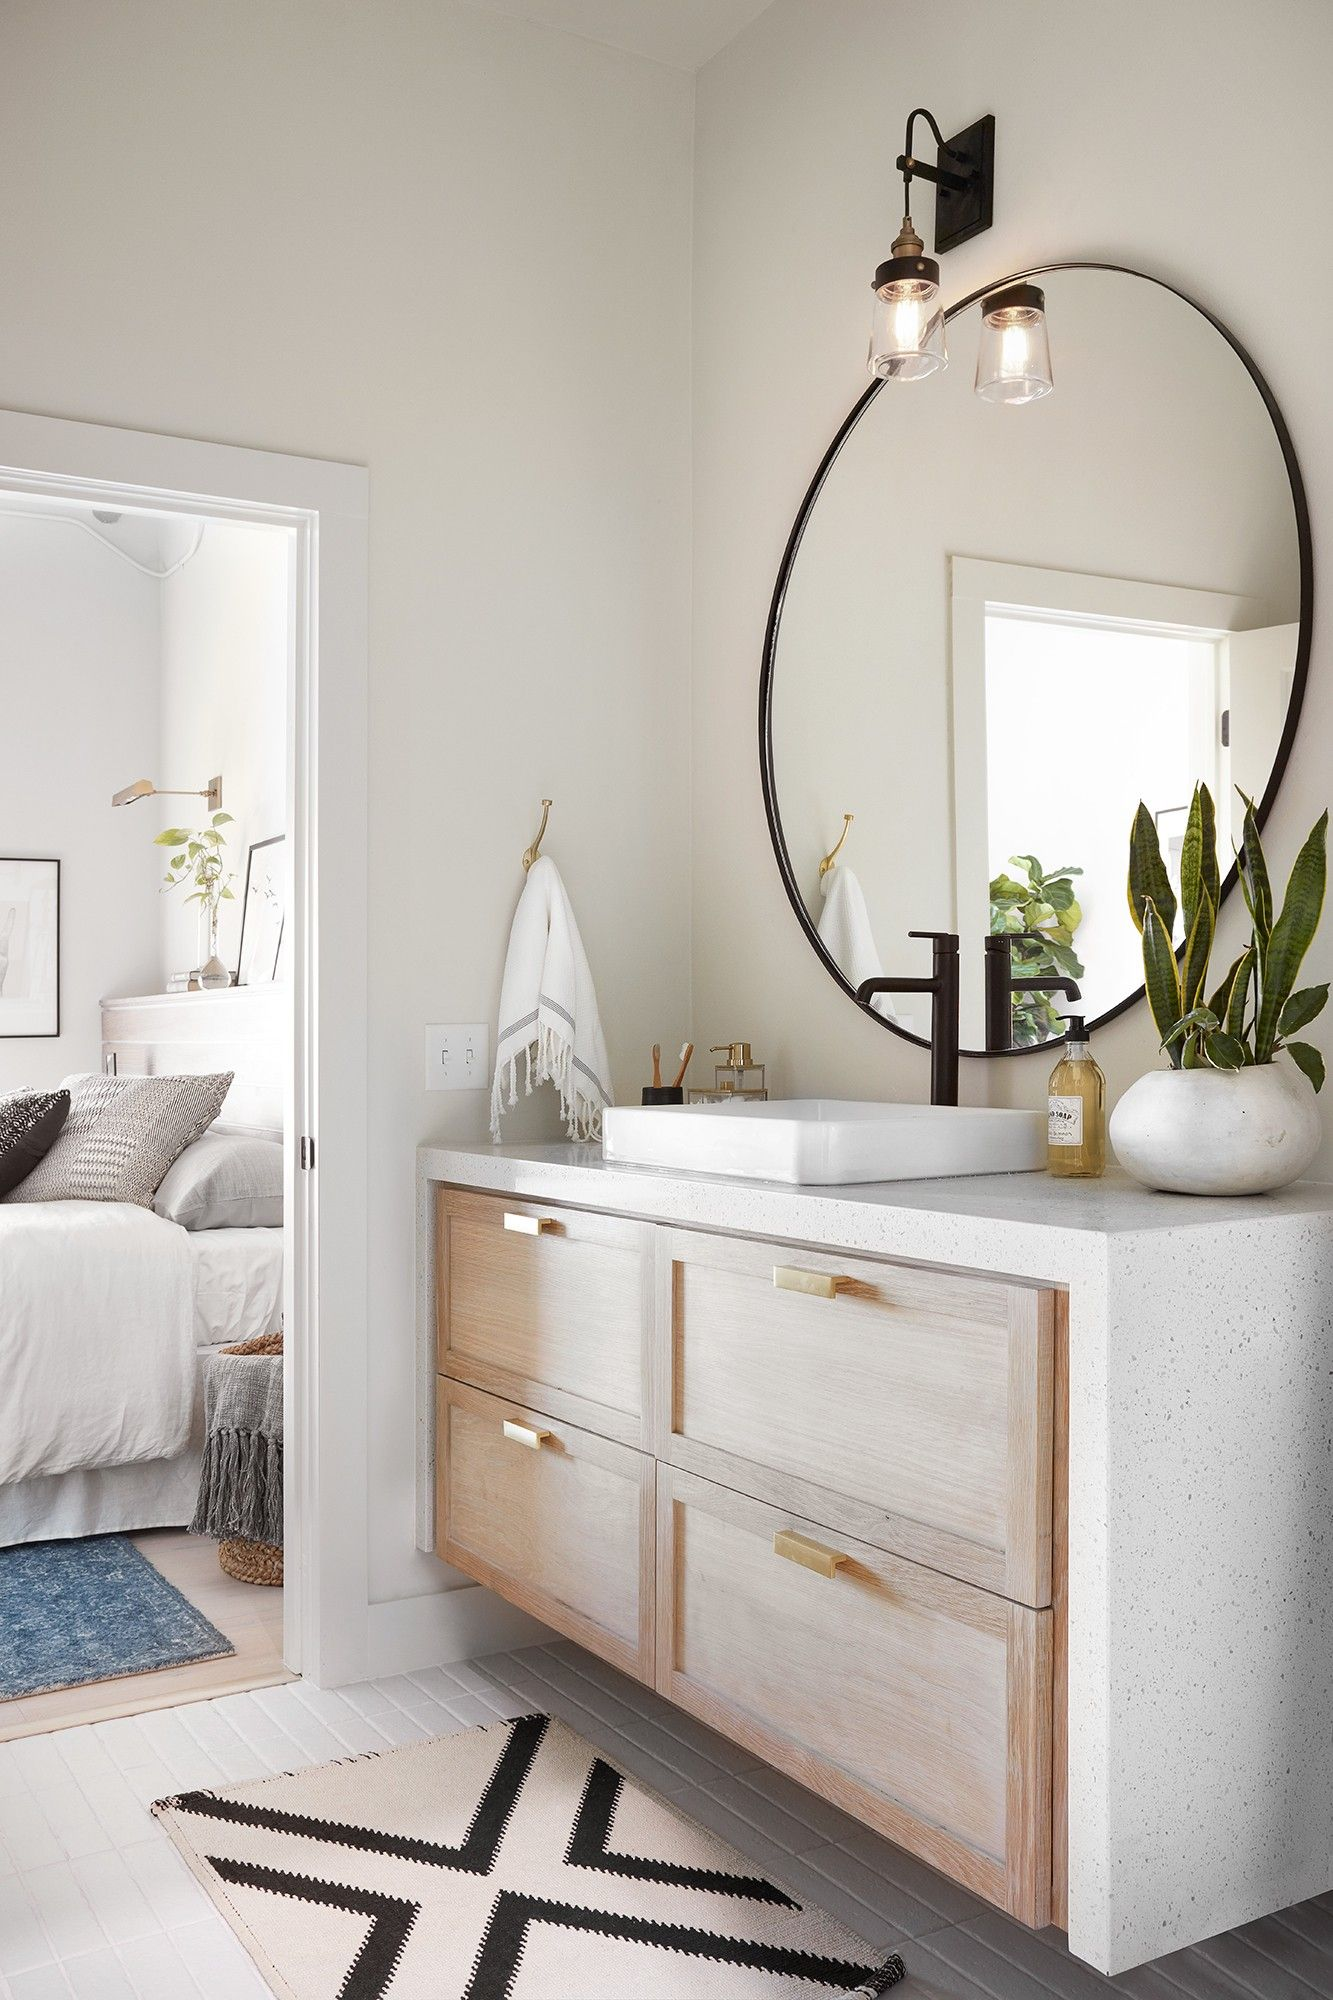 Episode 15 - The Home Sweet Home Loft   Master bathrooms ...